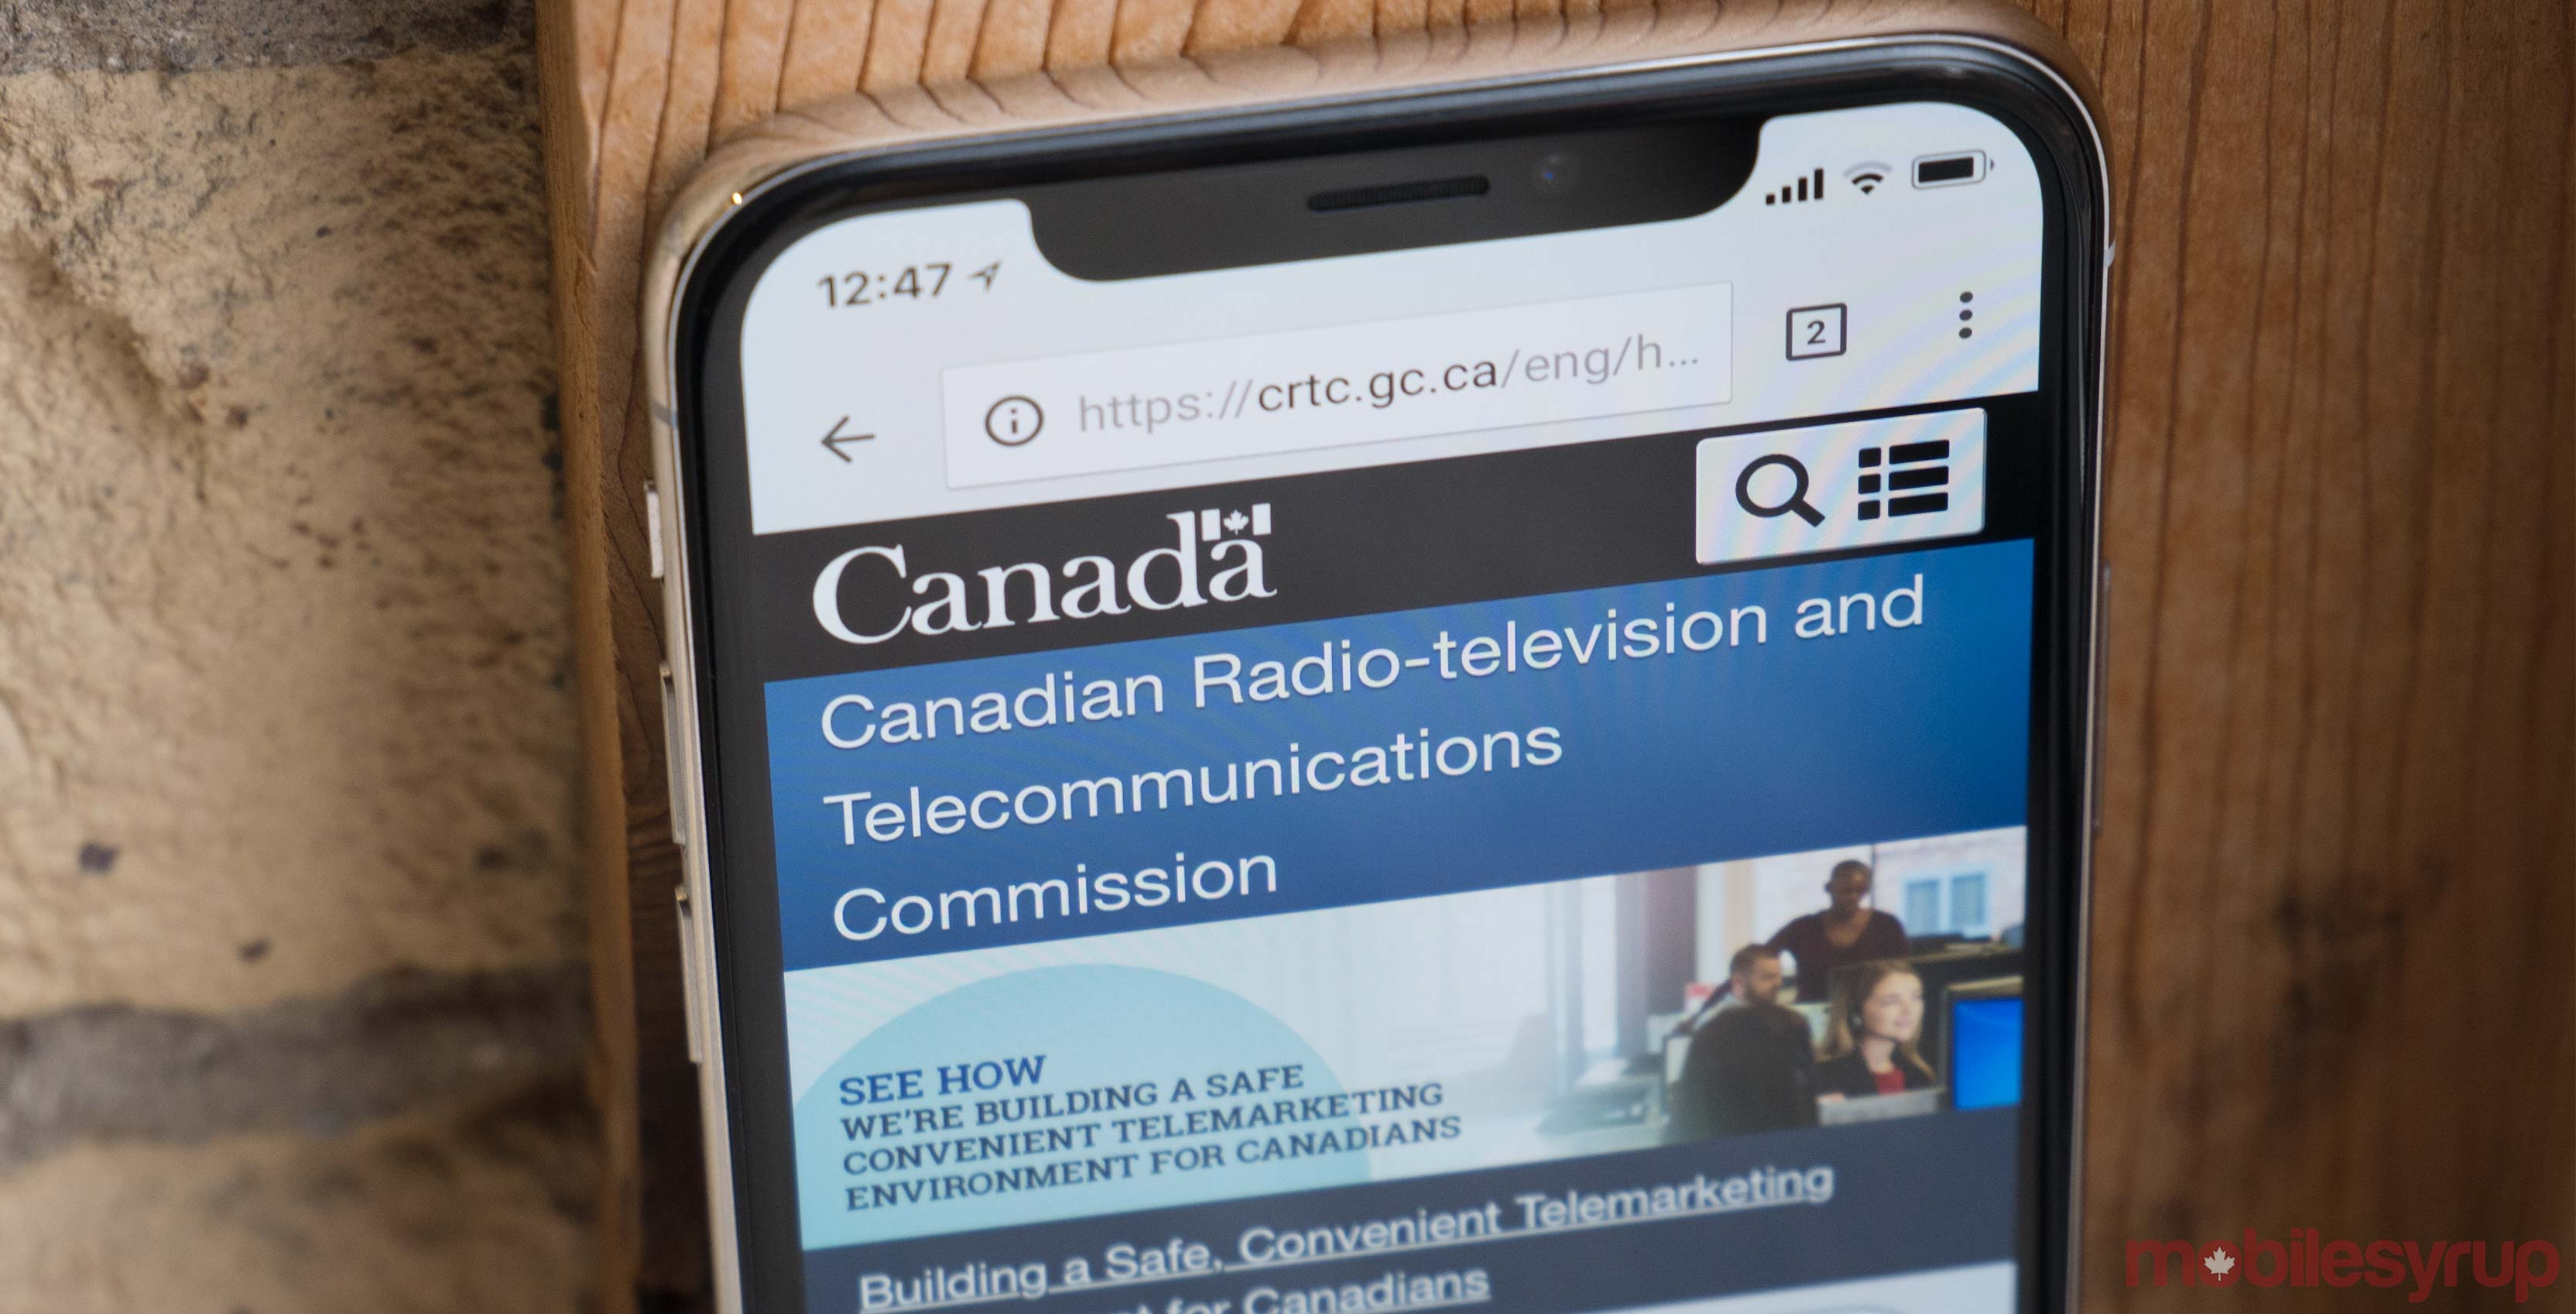 Rogers, Bell and Telus low-cost plans don't address concerns